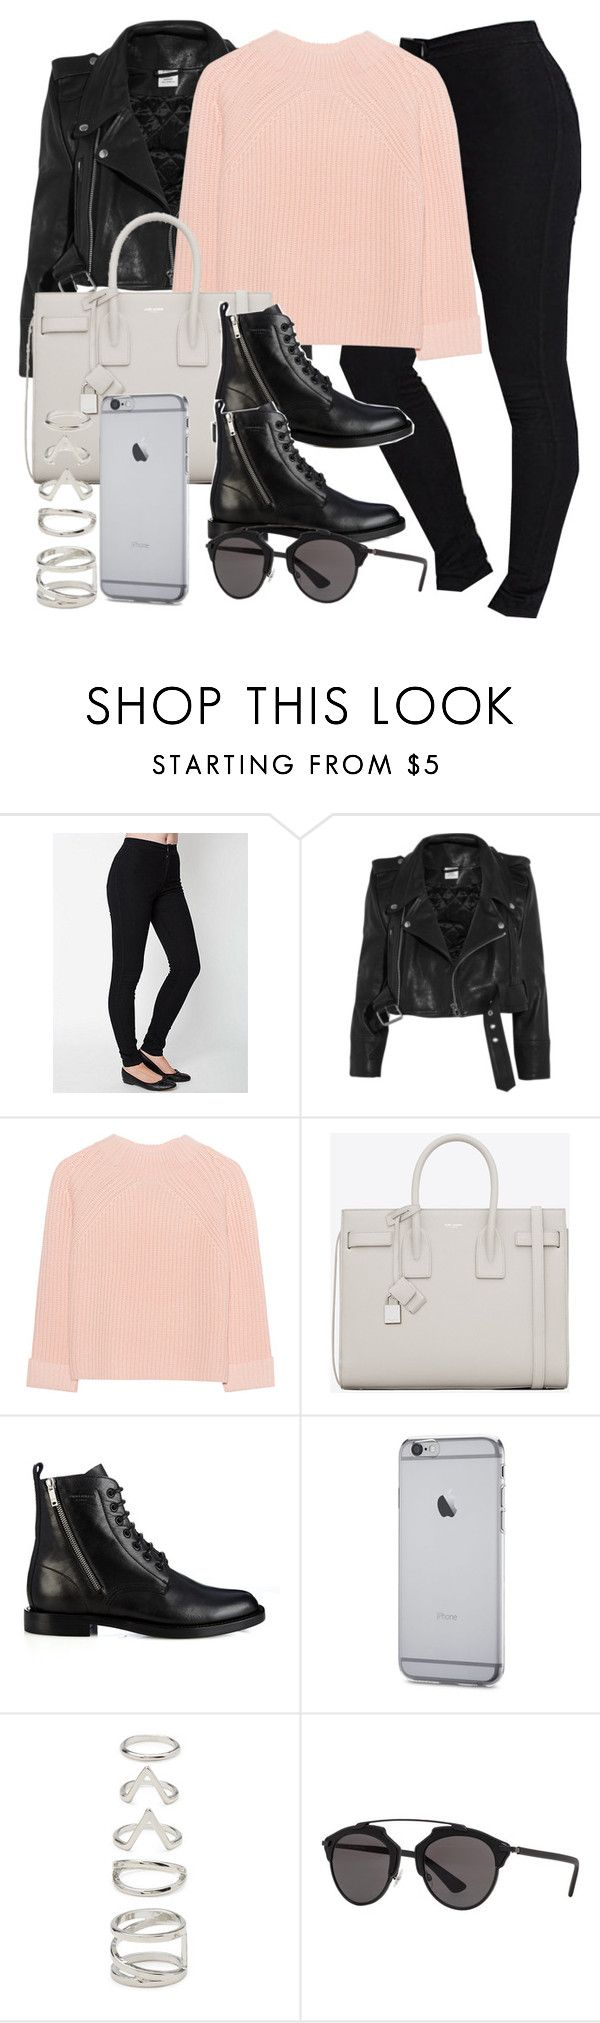 """Untitled #11883"" by vany-alvarado ❤ liked on Polyvore featuring Vetements, iHeart, Yves Saint Laurent, Forever 21 and Christian Dior"